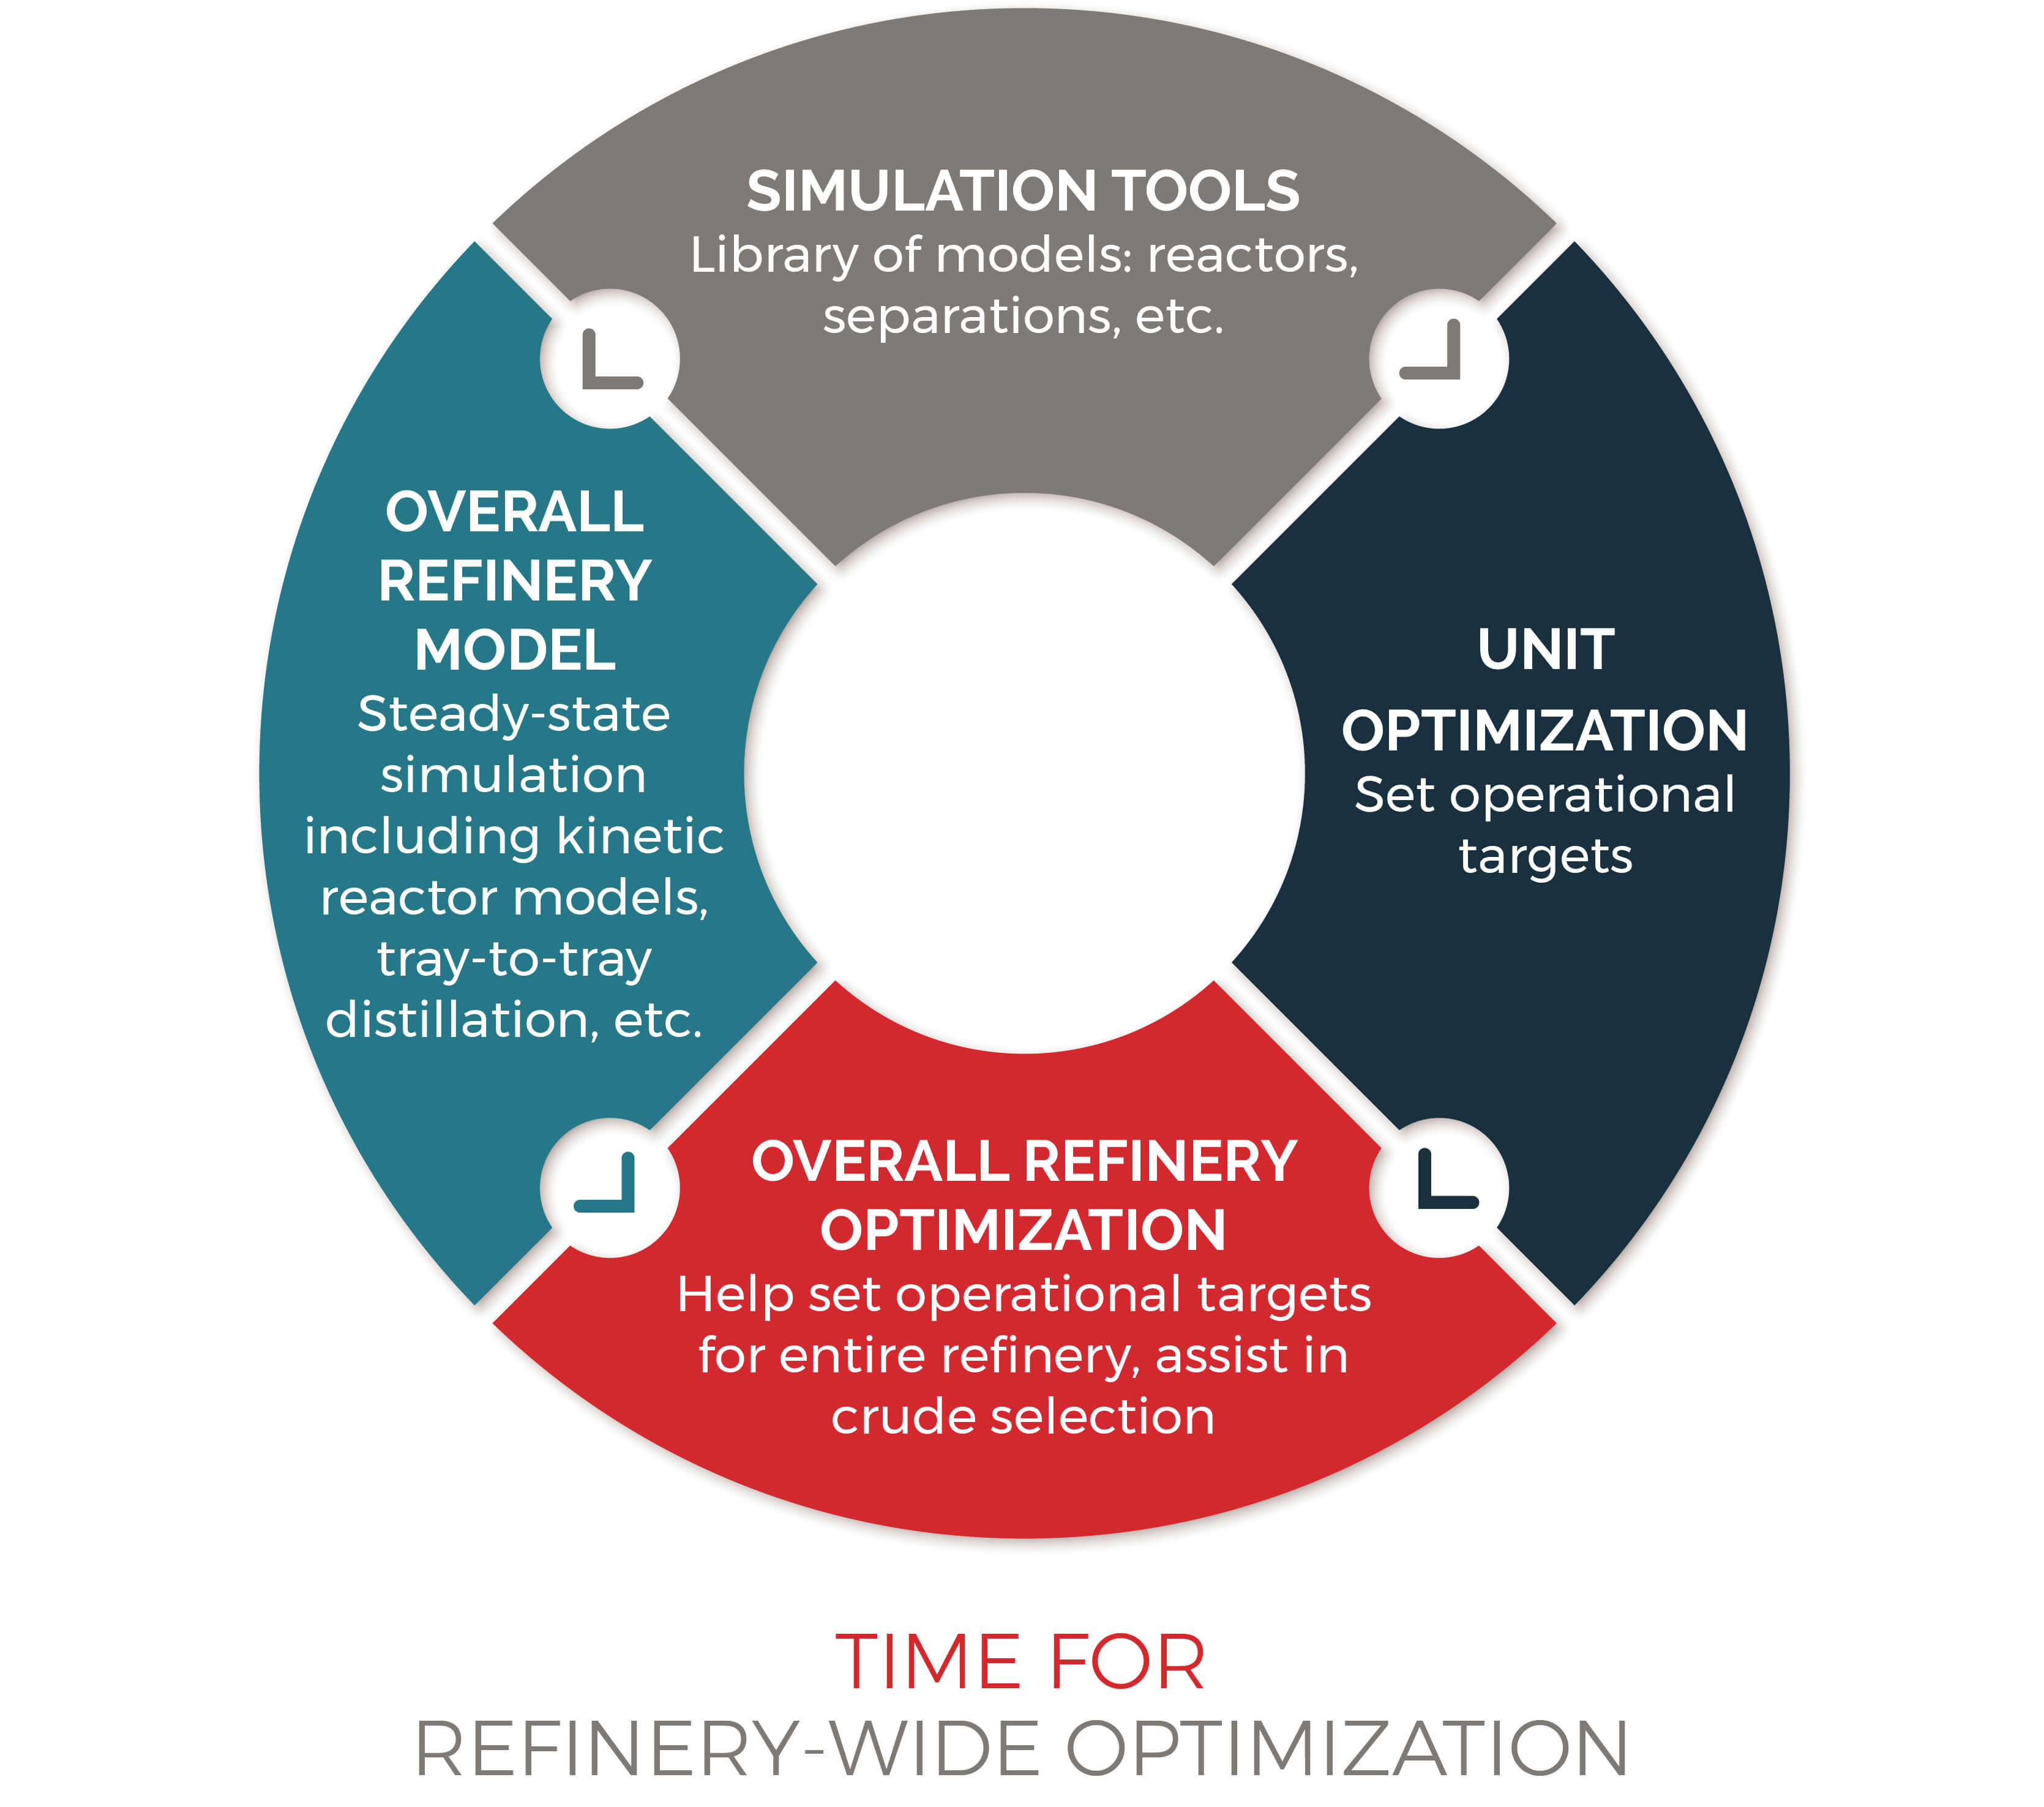 Time for refinery-wide optimization